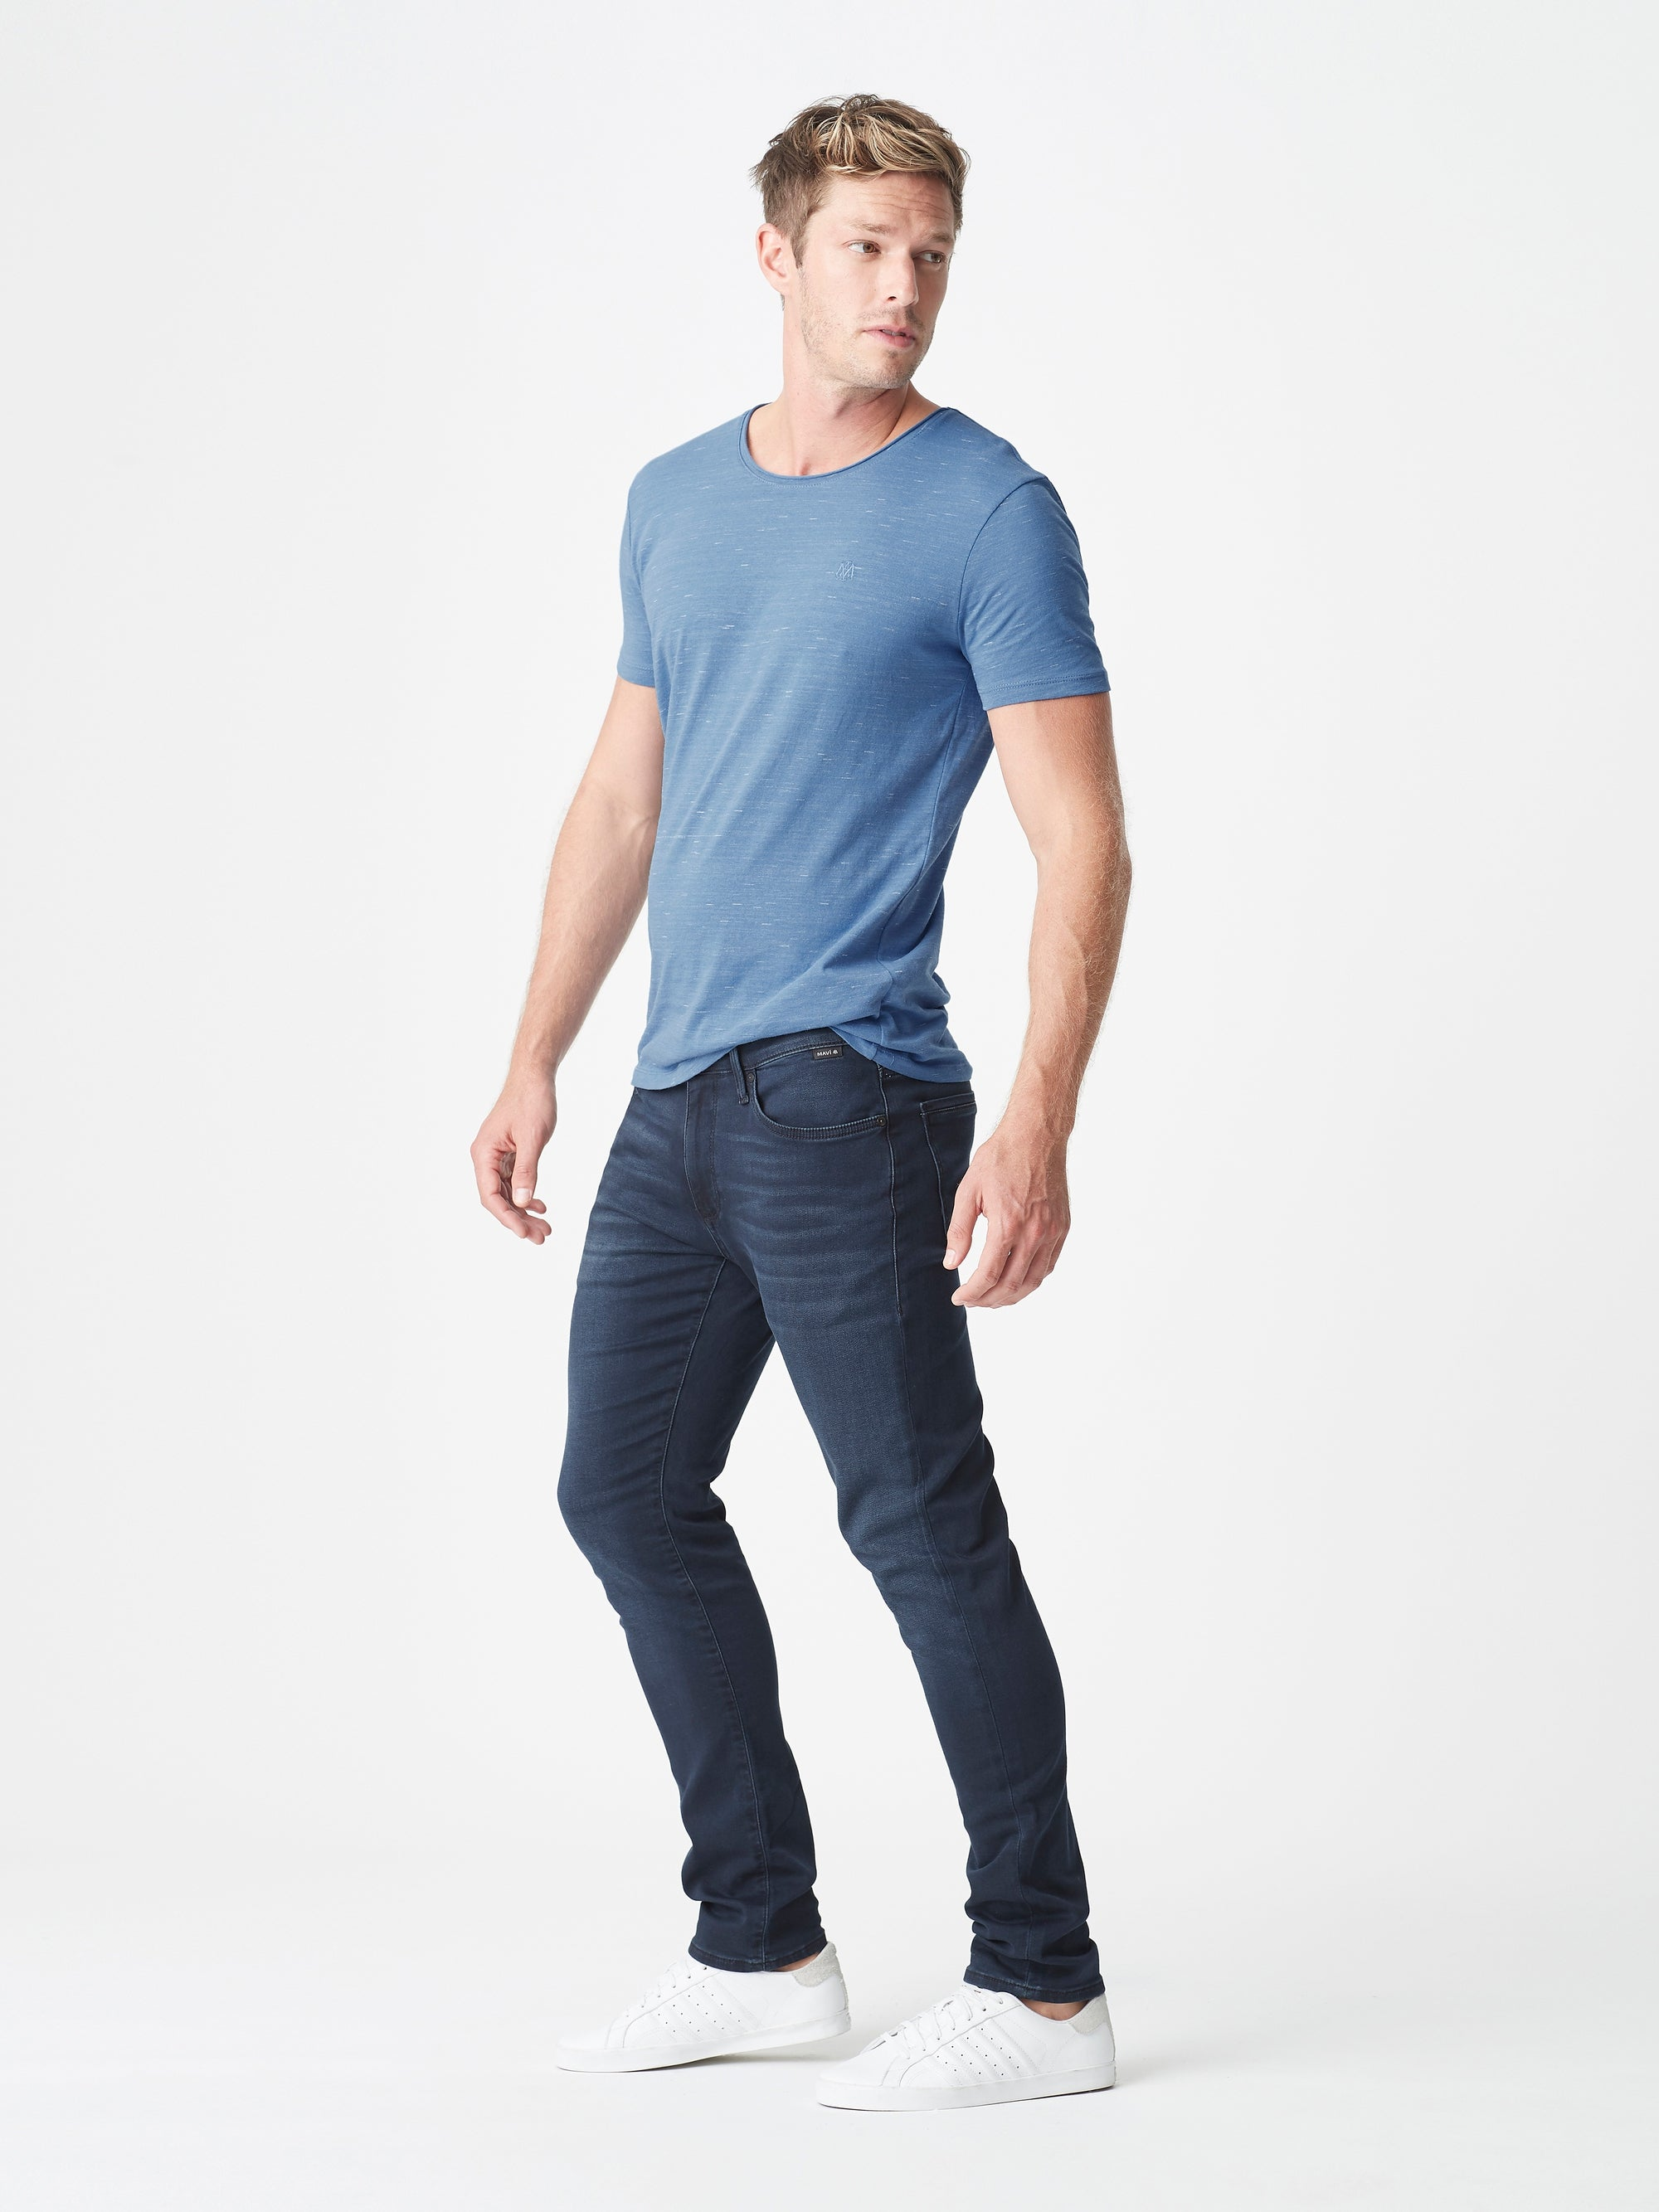 Jake Slim Skinny Jeans in Blue Black Athletic